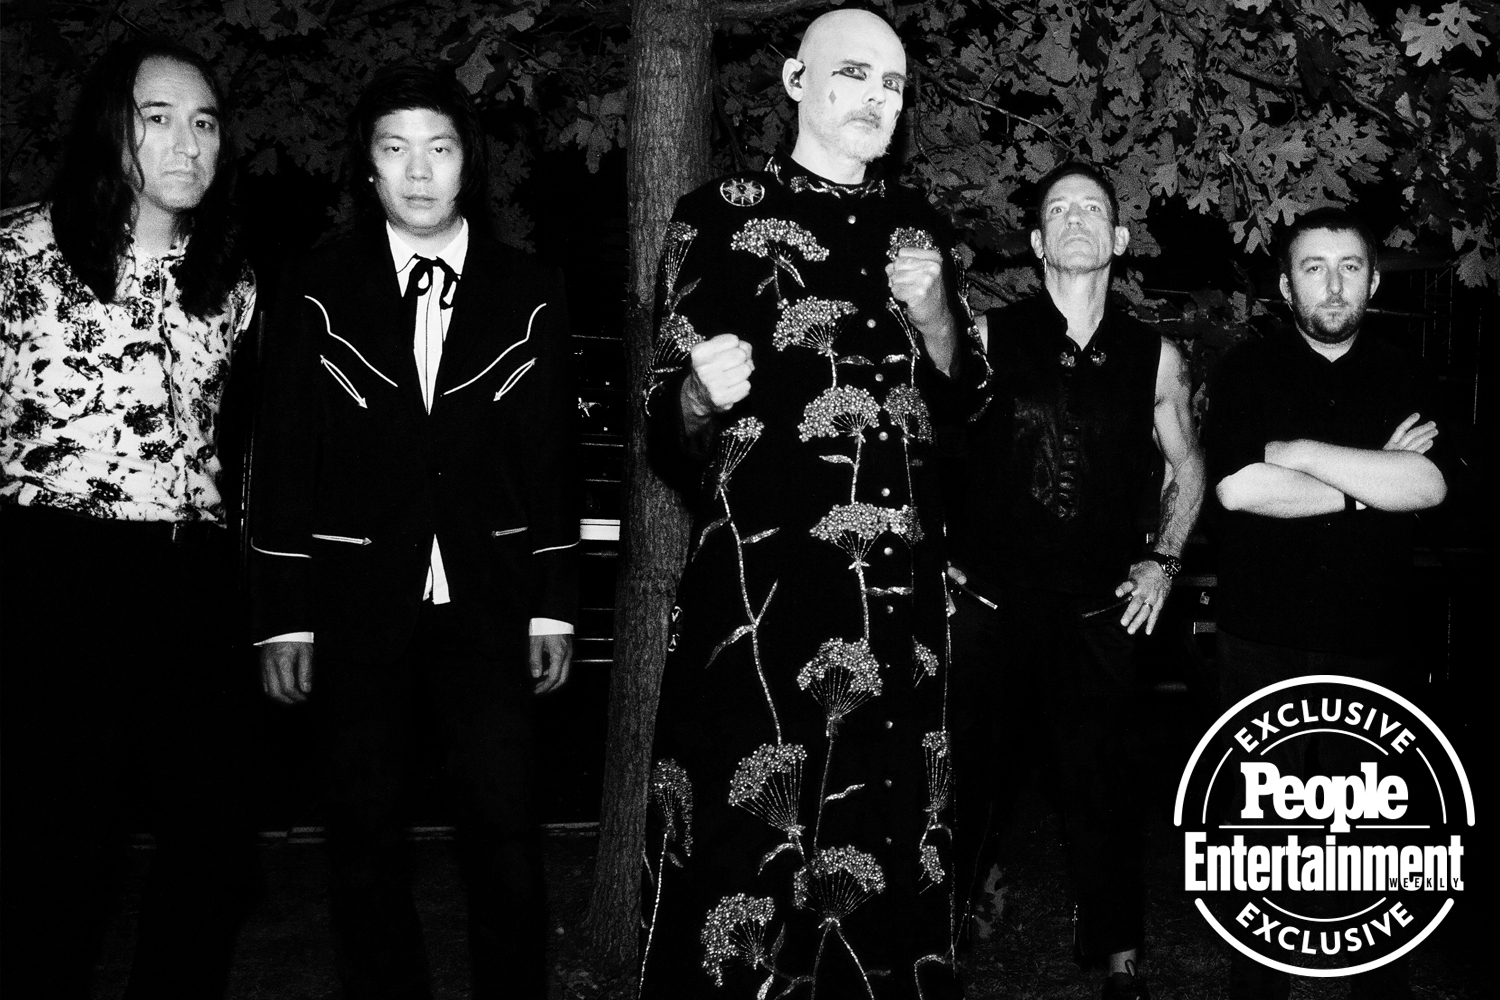 The Smashing Pumpkins photographed at Riot Fest 2021